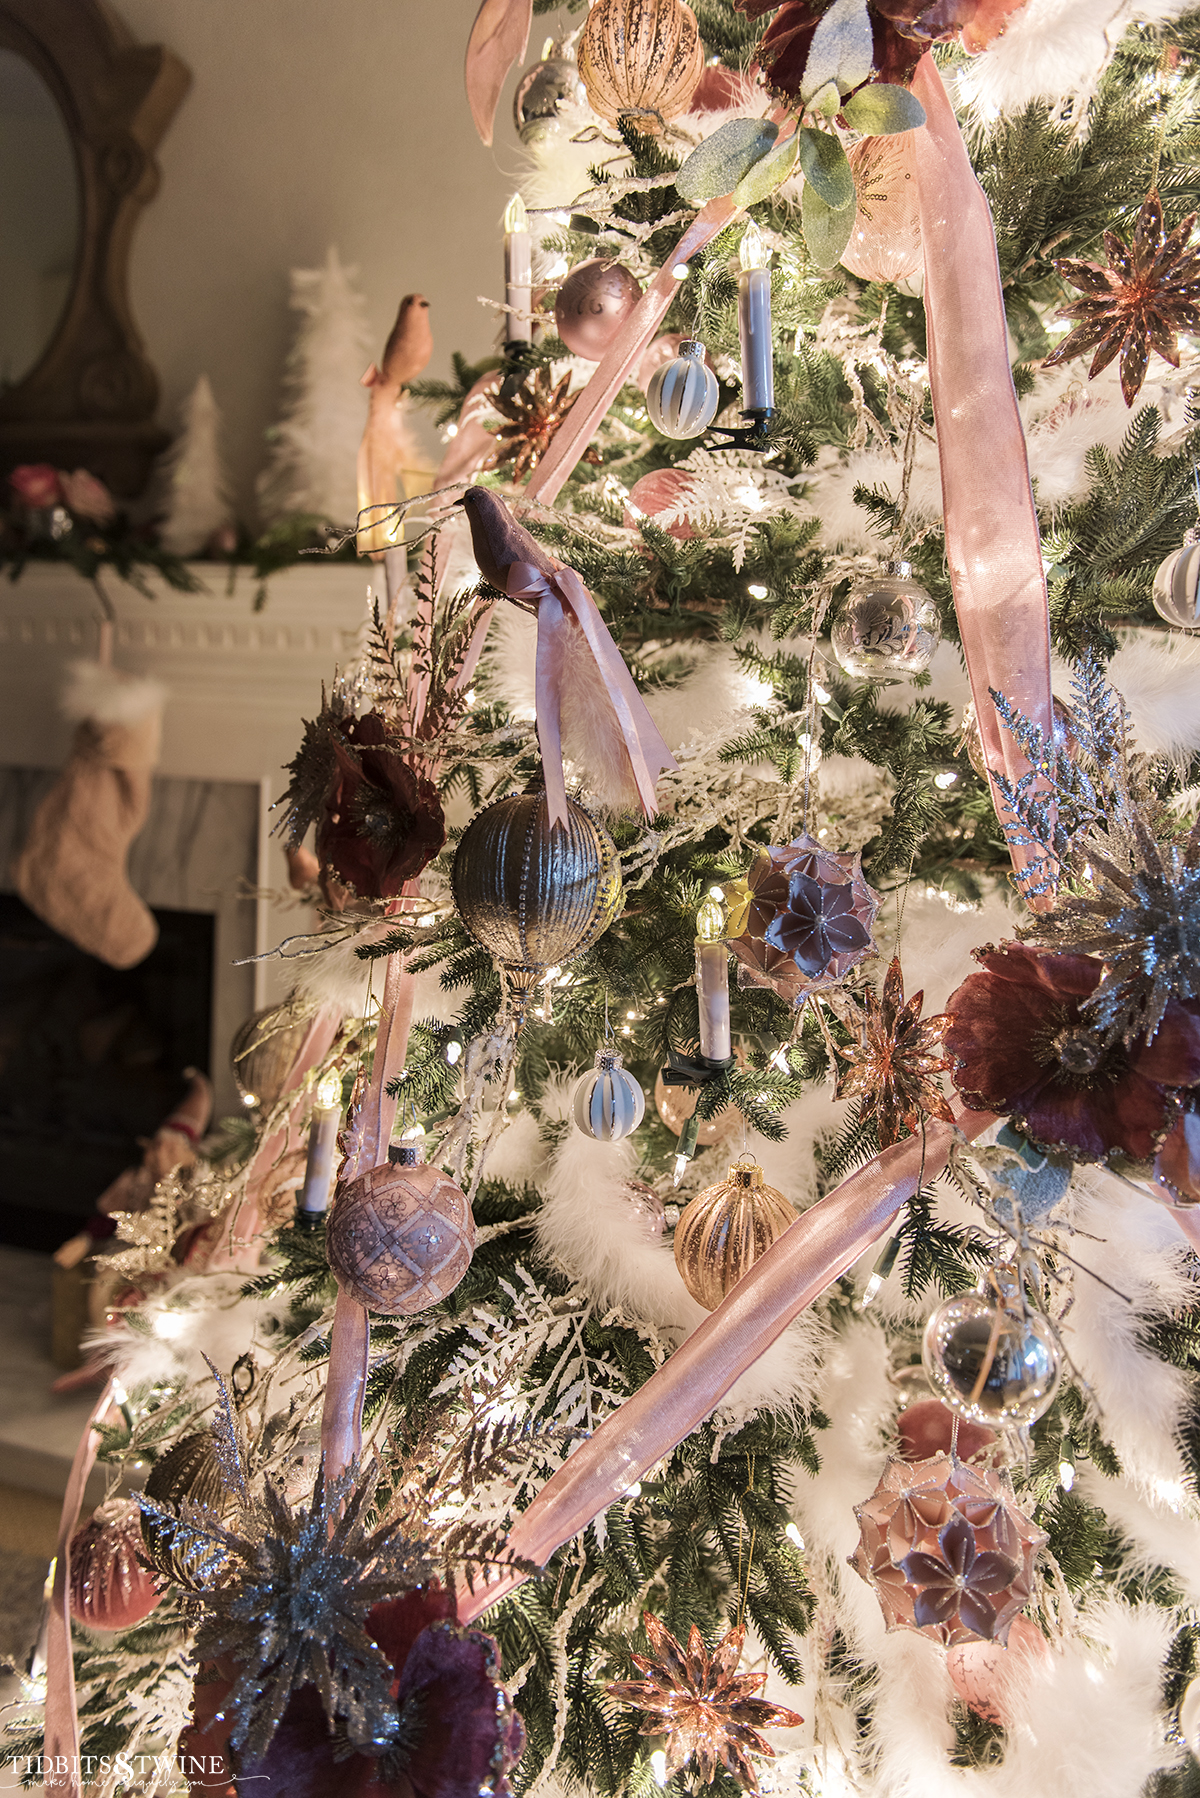 French pink Christmas tree with crisscross ribbon and fireplace in the background